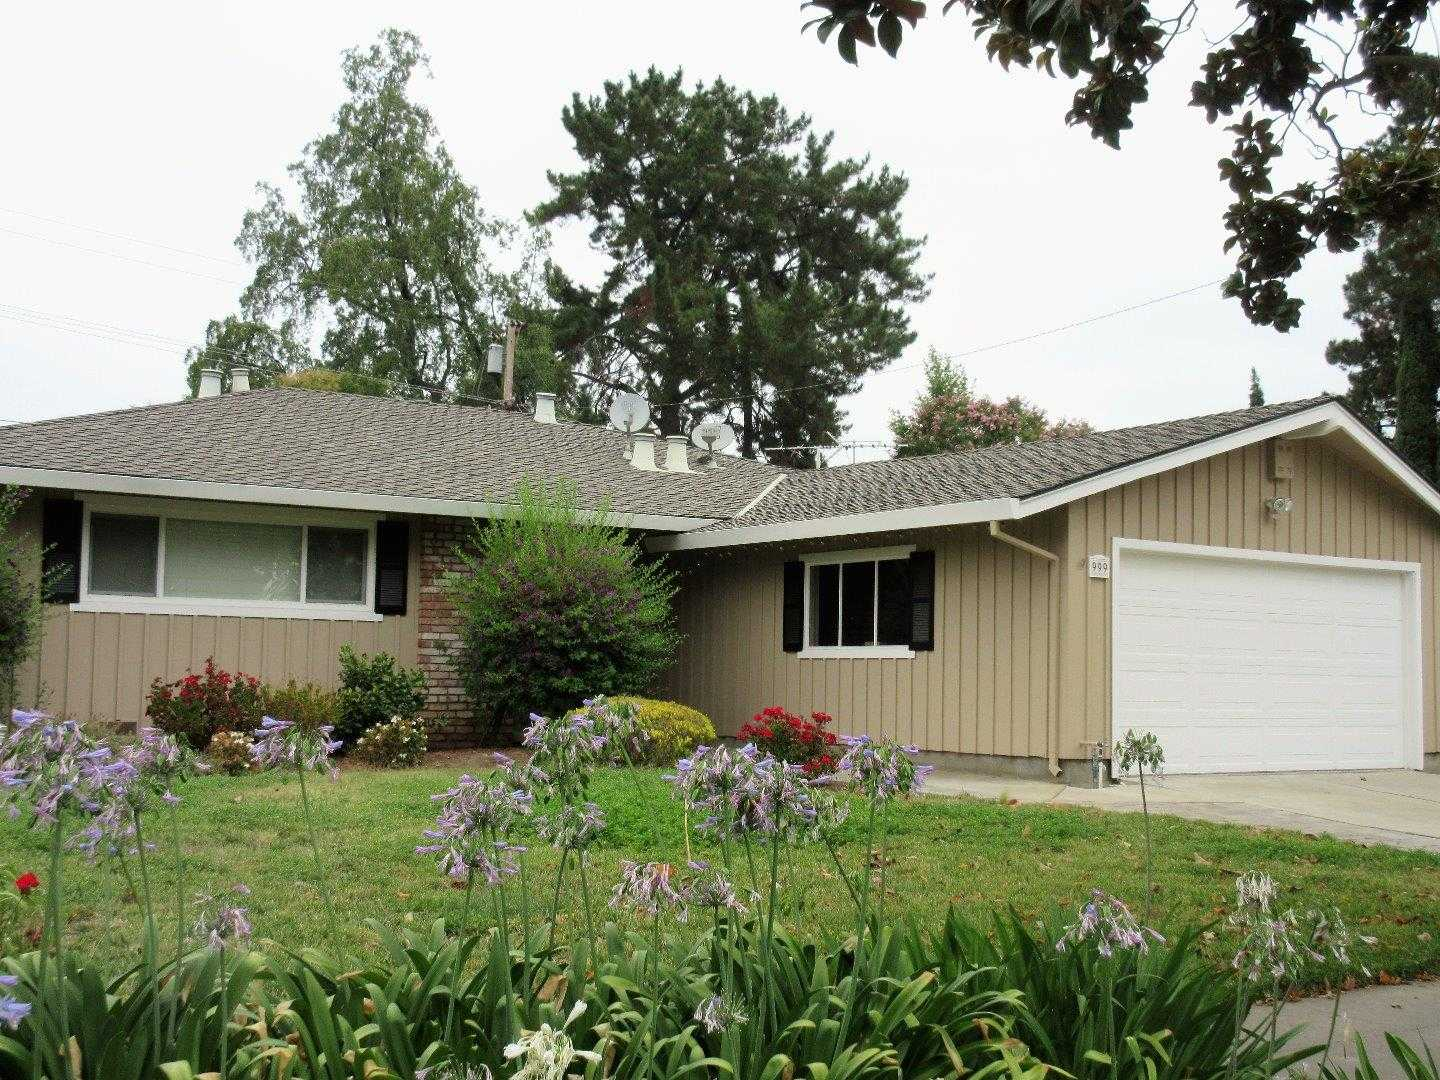 $1,700,000 - 3Br/2Ba -  for Sale in Sunnyvale